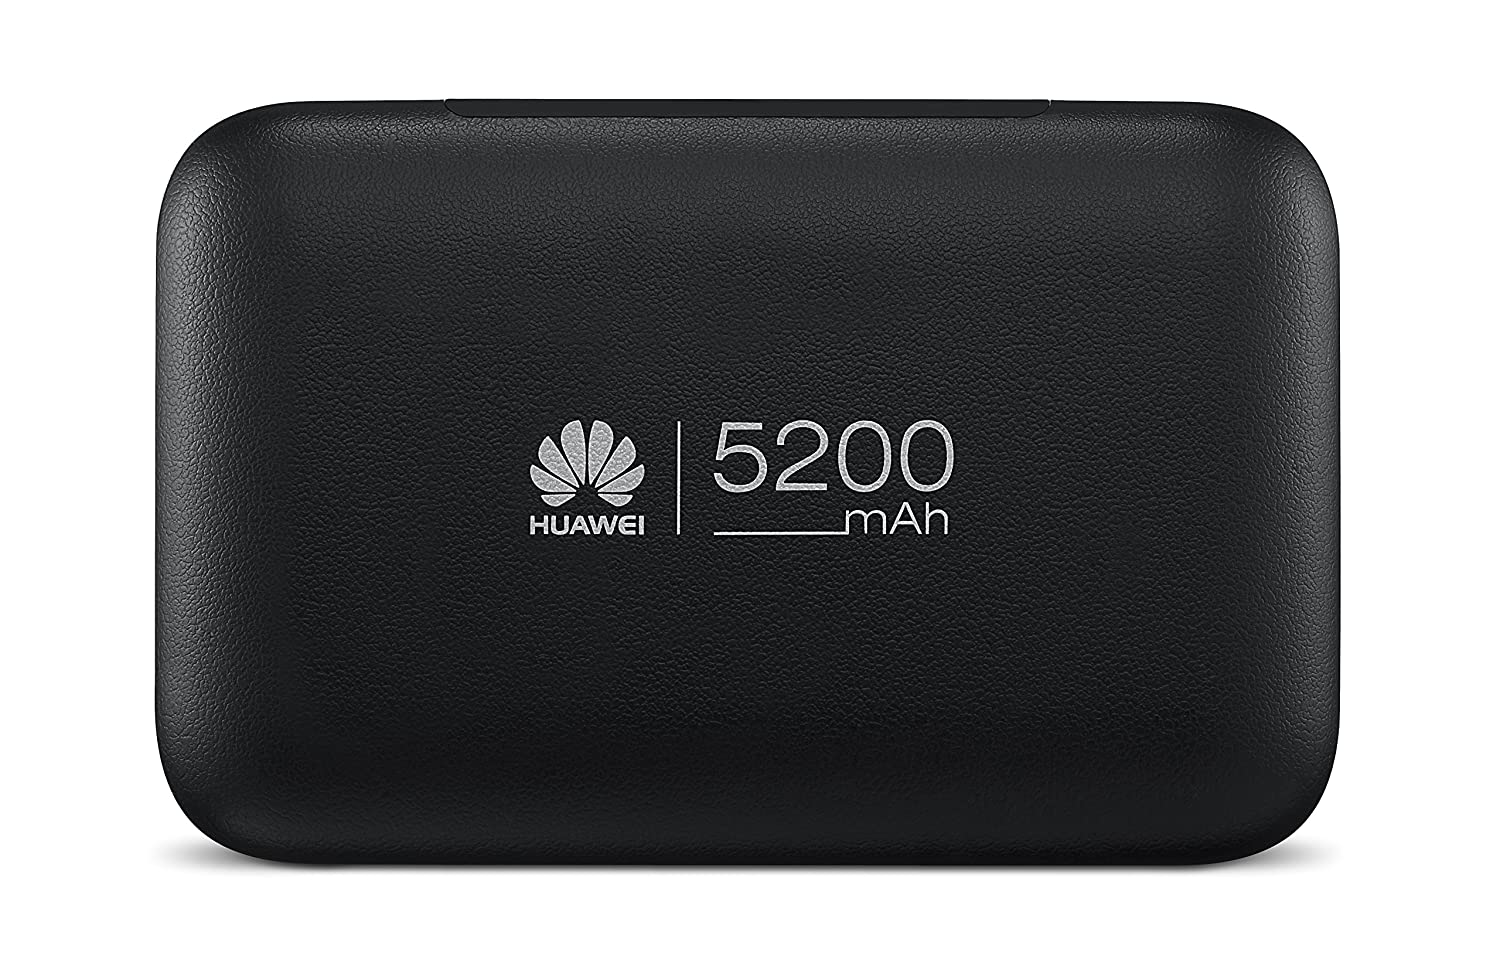 4G LTE in Europe, Asia, Middle East, Africa /& 3G globally, 20 hour 5200 mAh battery Black Huawei E5770s-320 150 Mbps 4G LTE Mobile WiFi Hotspot